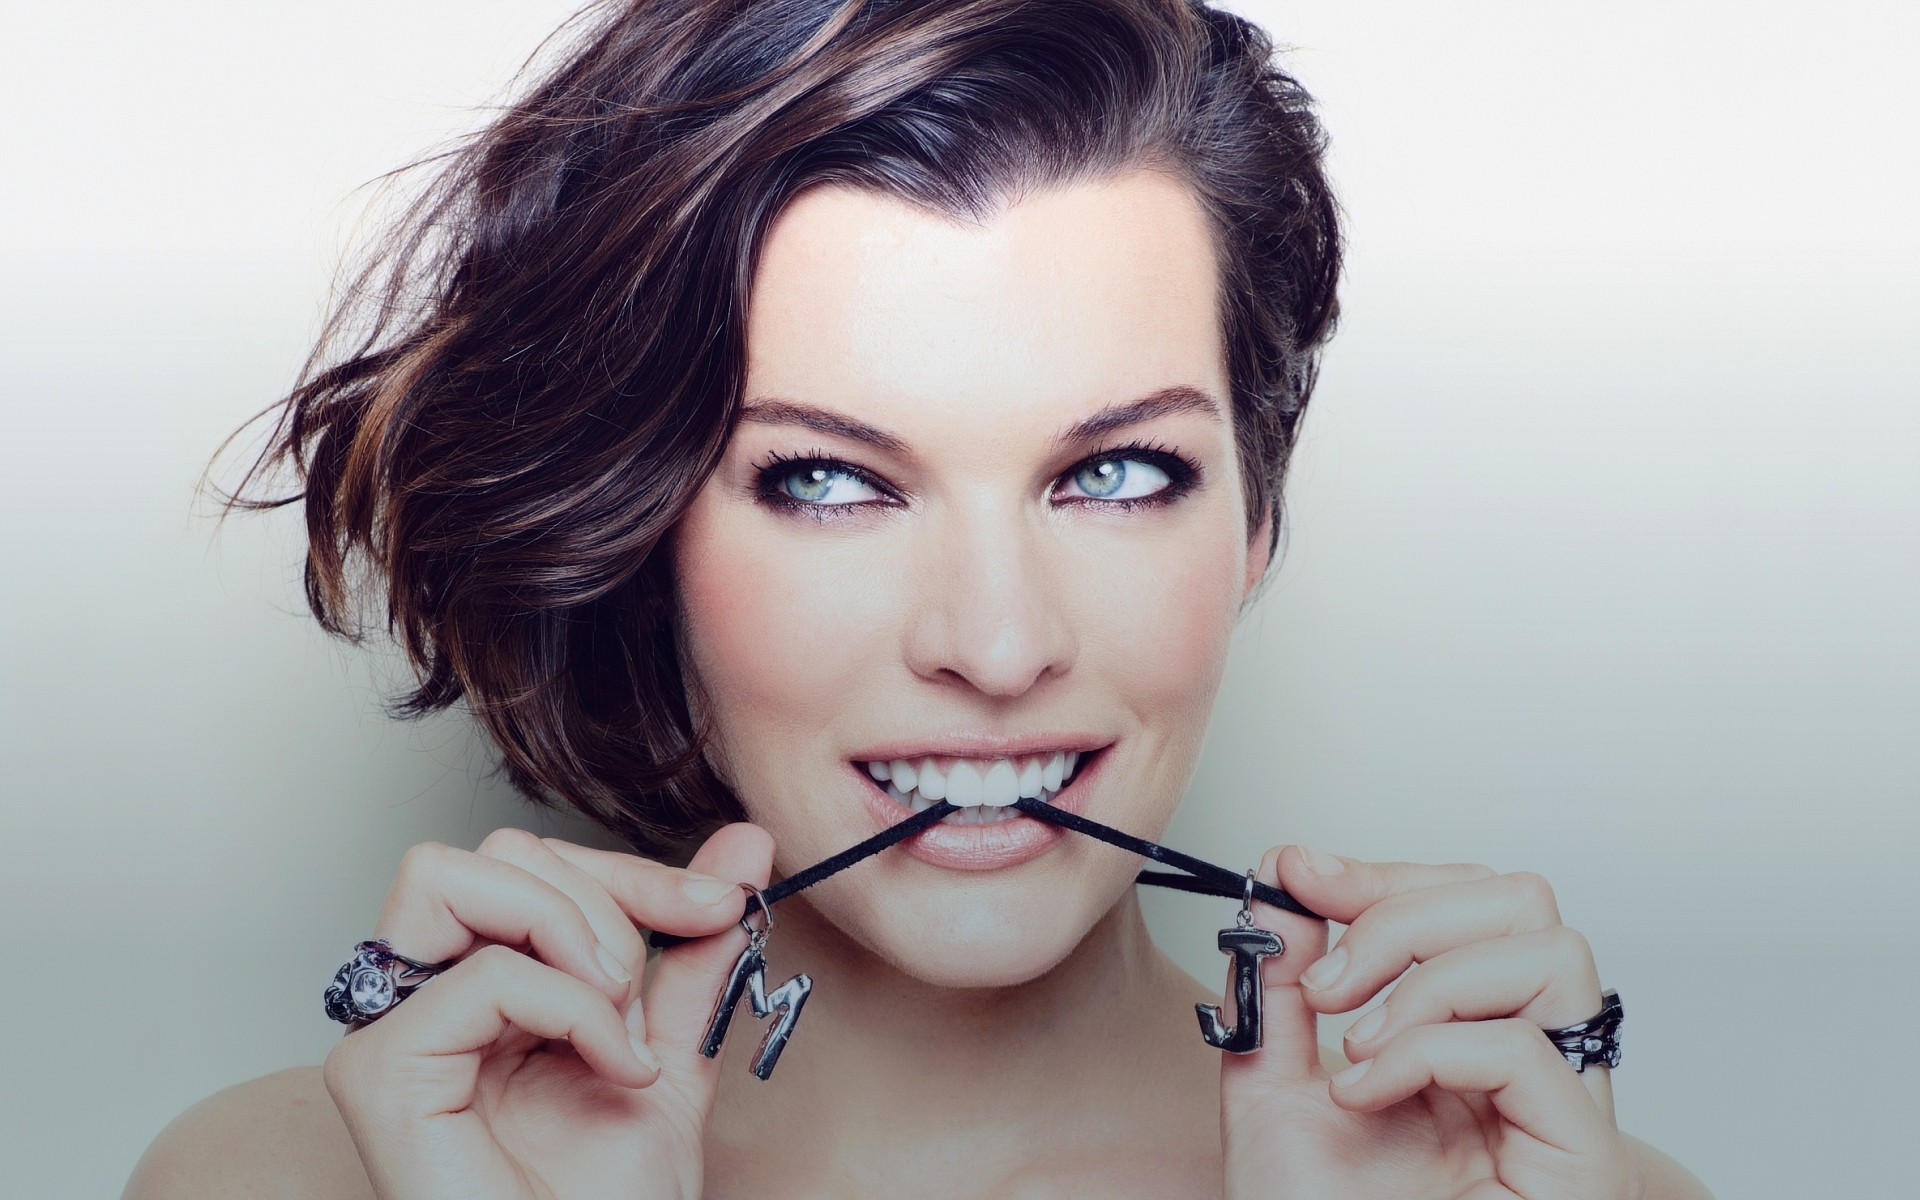 One more Ukrainian failure: Milla Jovovich was suppose to host Eurovision 2017